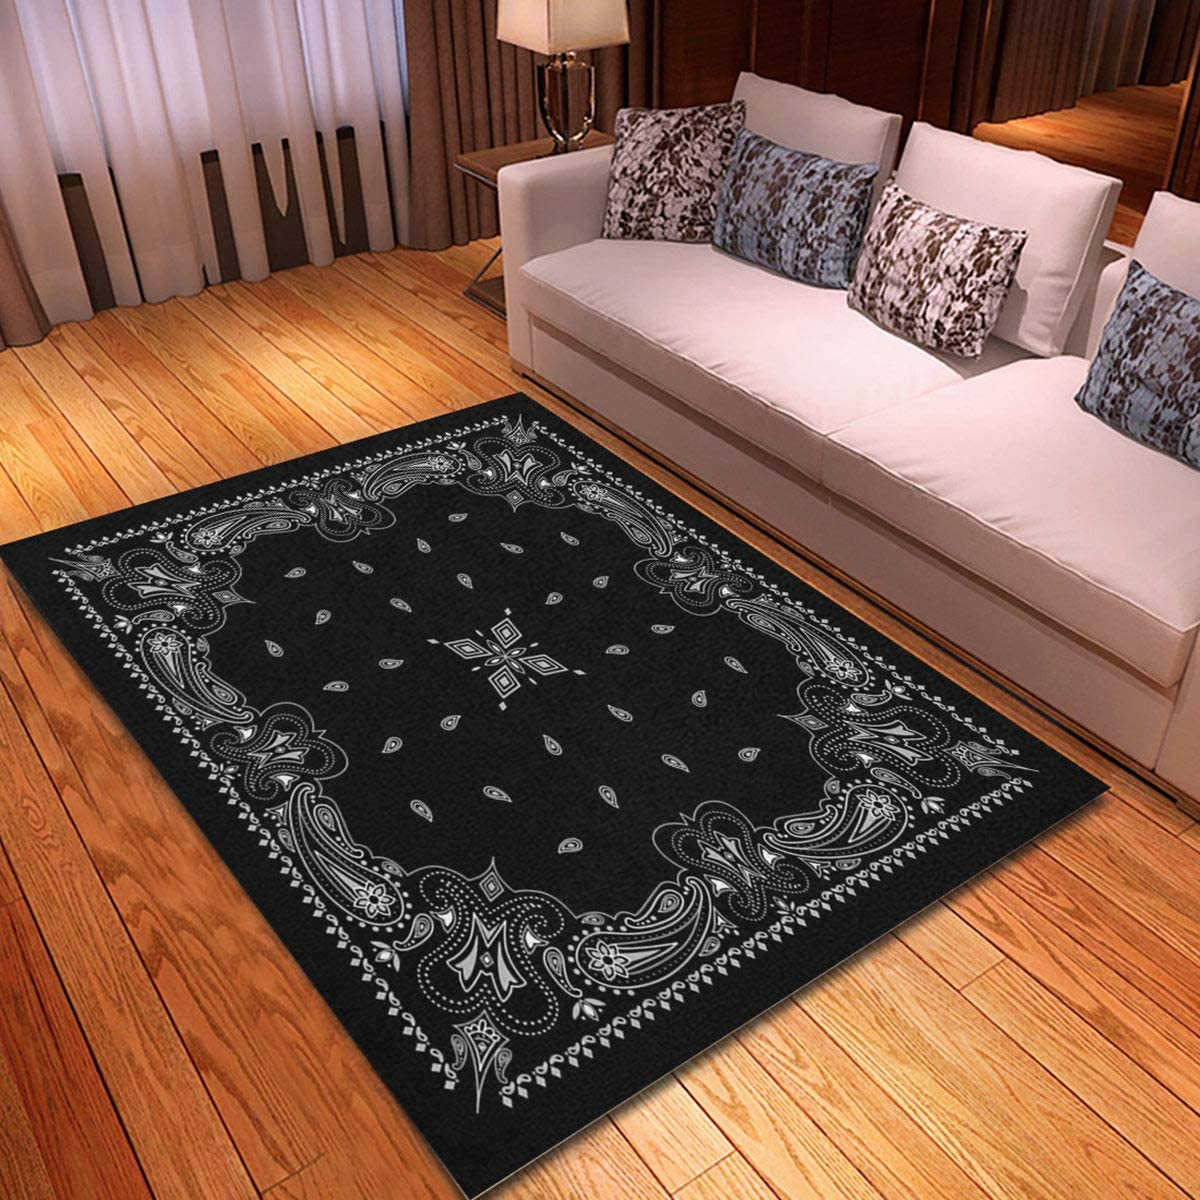 rouihot Non-Slip Max 77% OFF Area Rug 4'x Paisley Cheap sale Pattern Colorful Black 6'